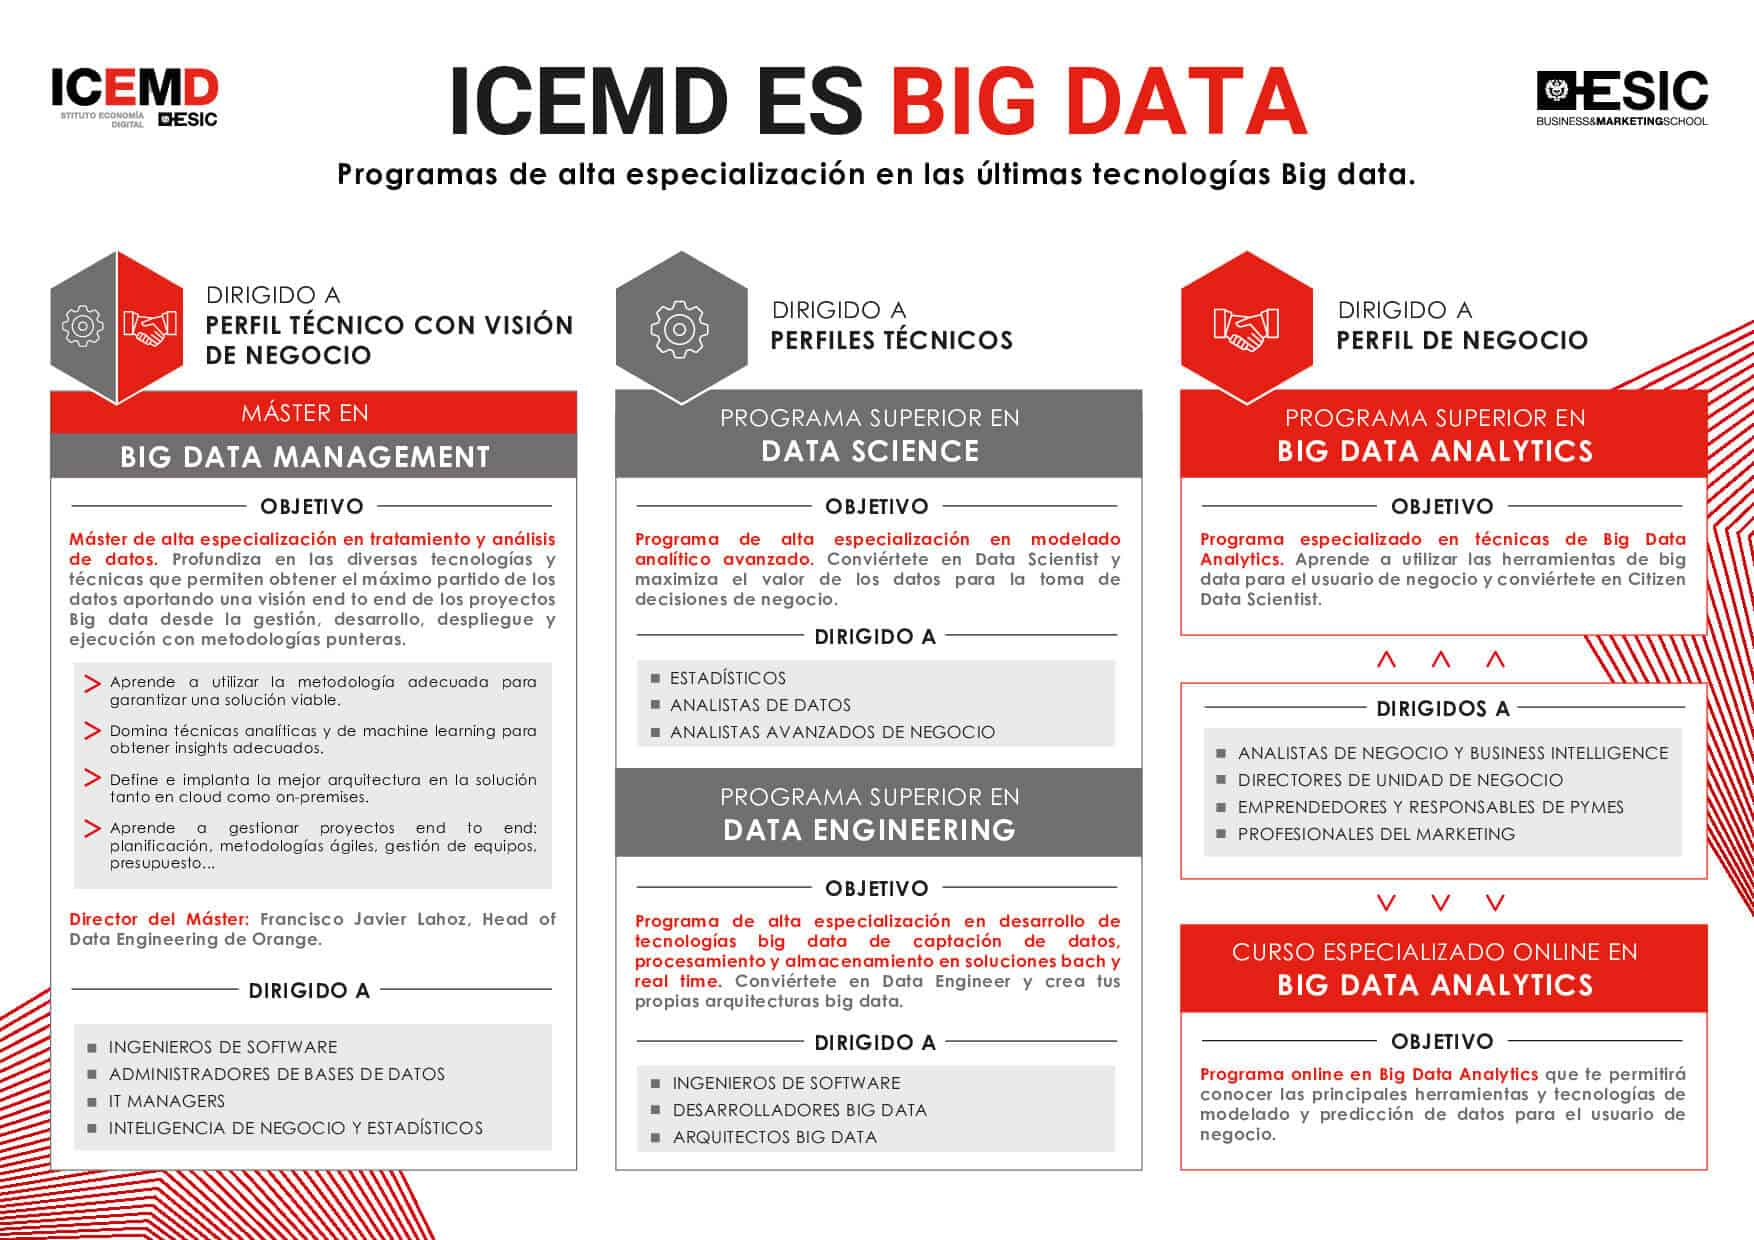 ICEMD es Big Data